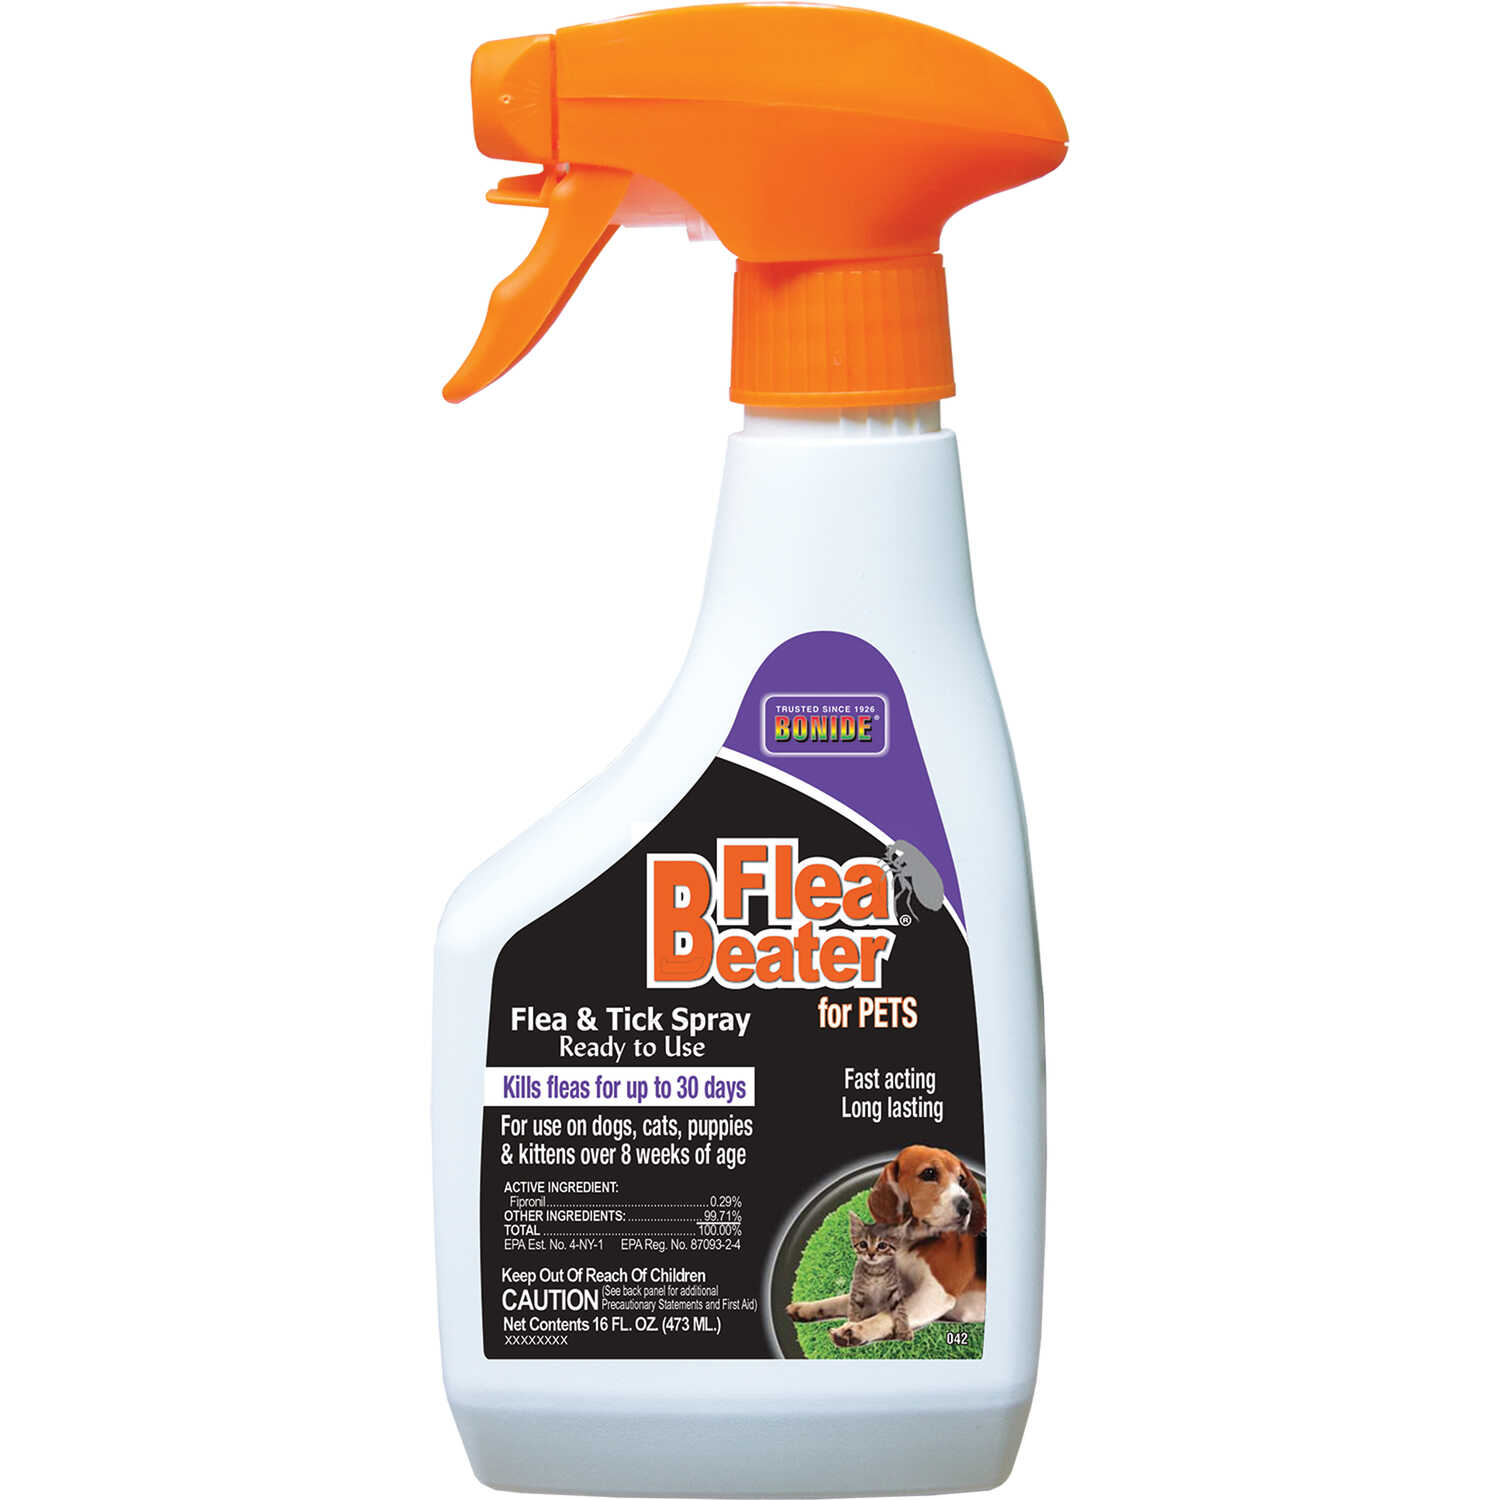 Bonide  Flea Beater  Flea & Tick Spray  16 oz.